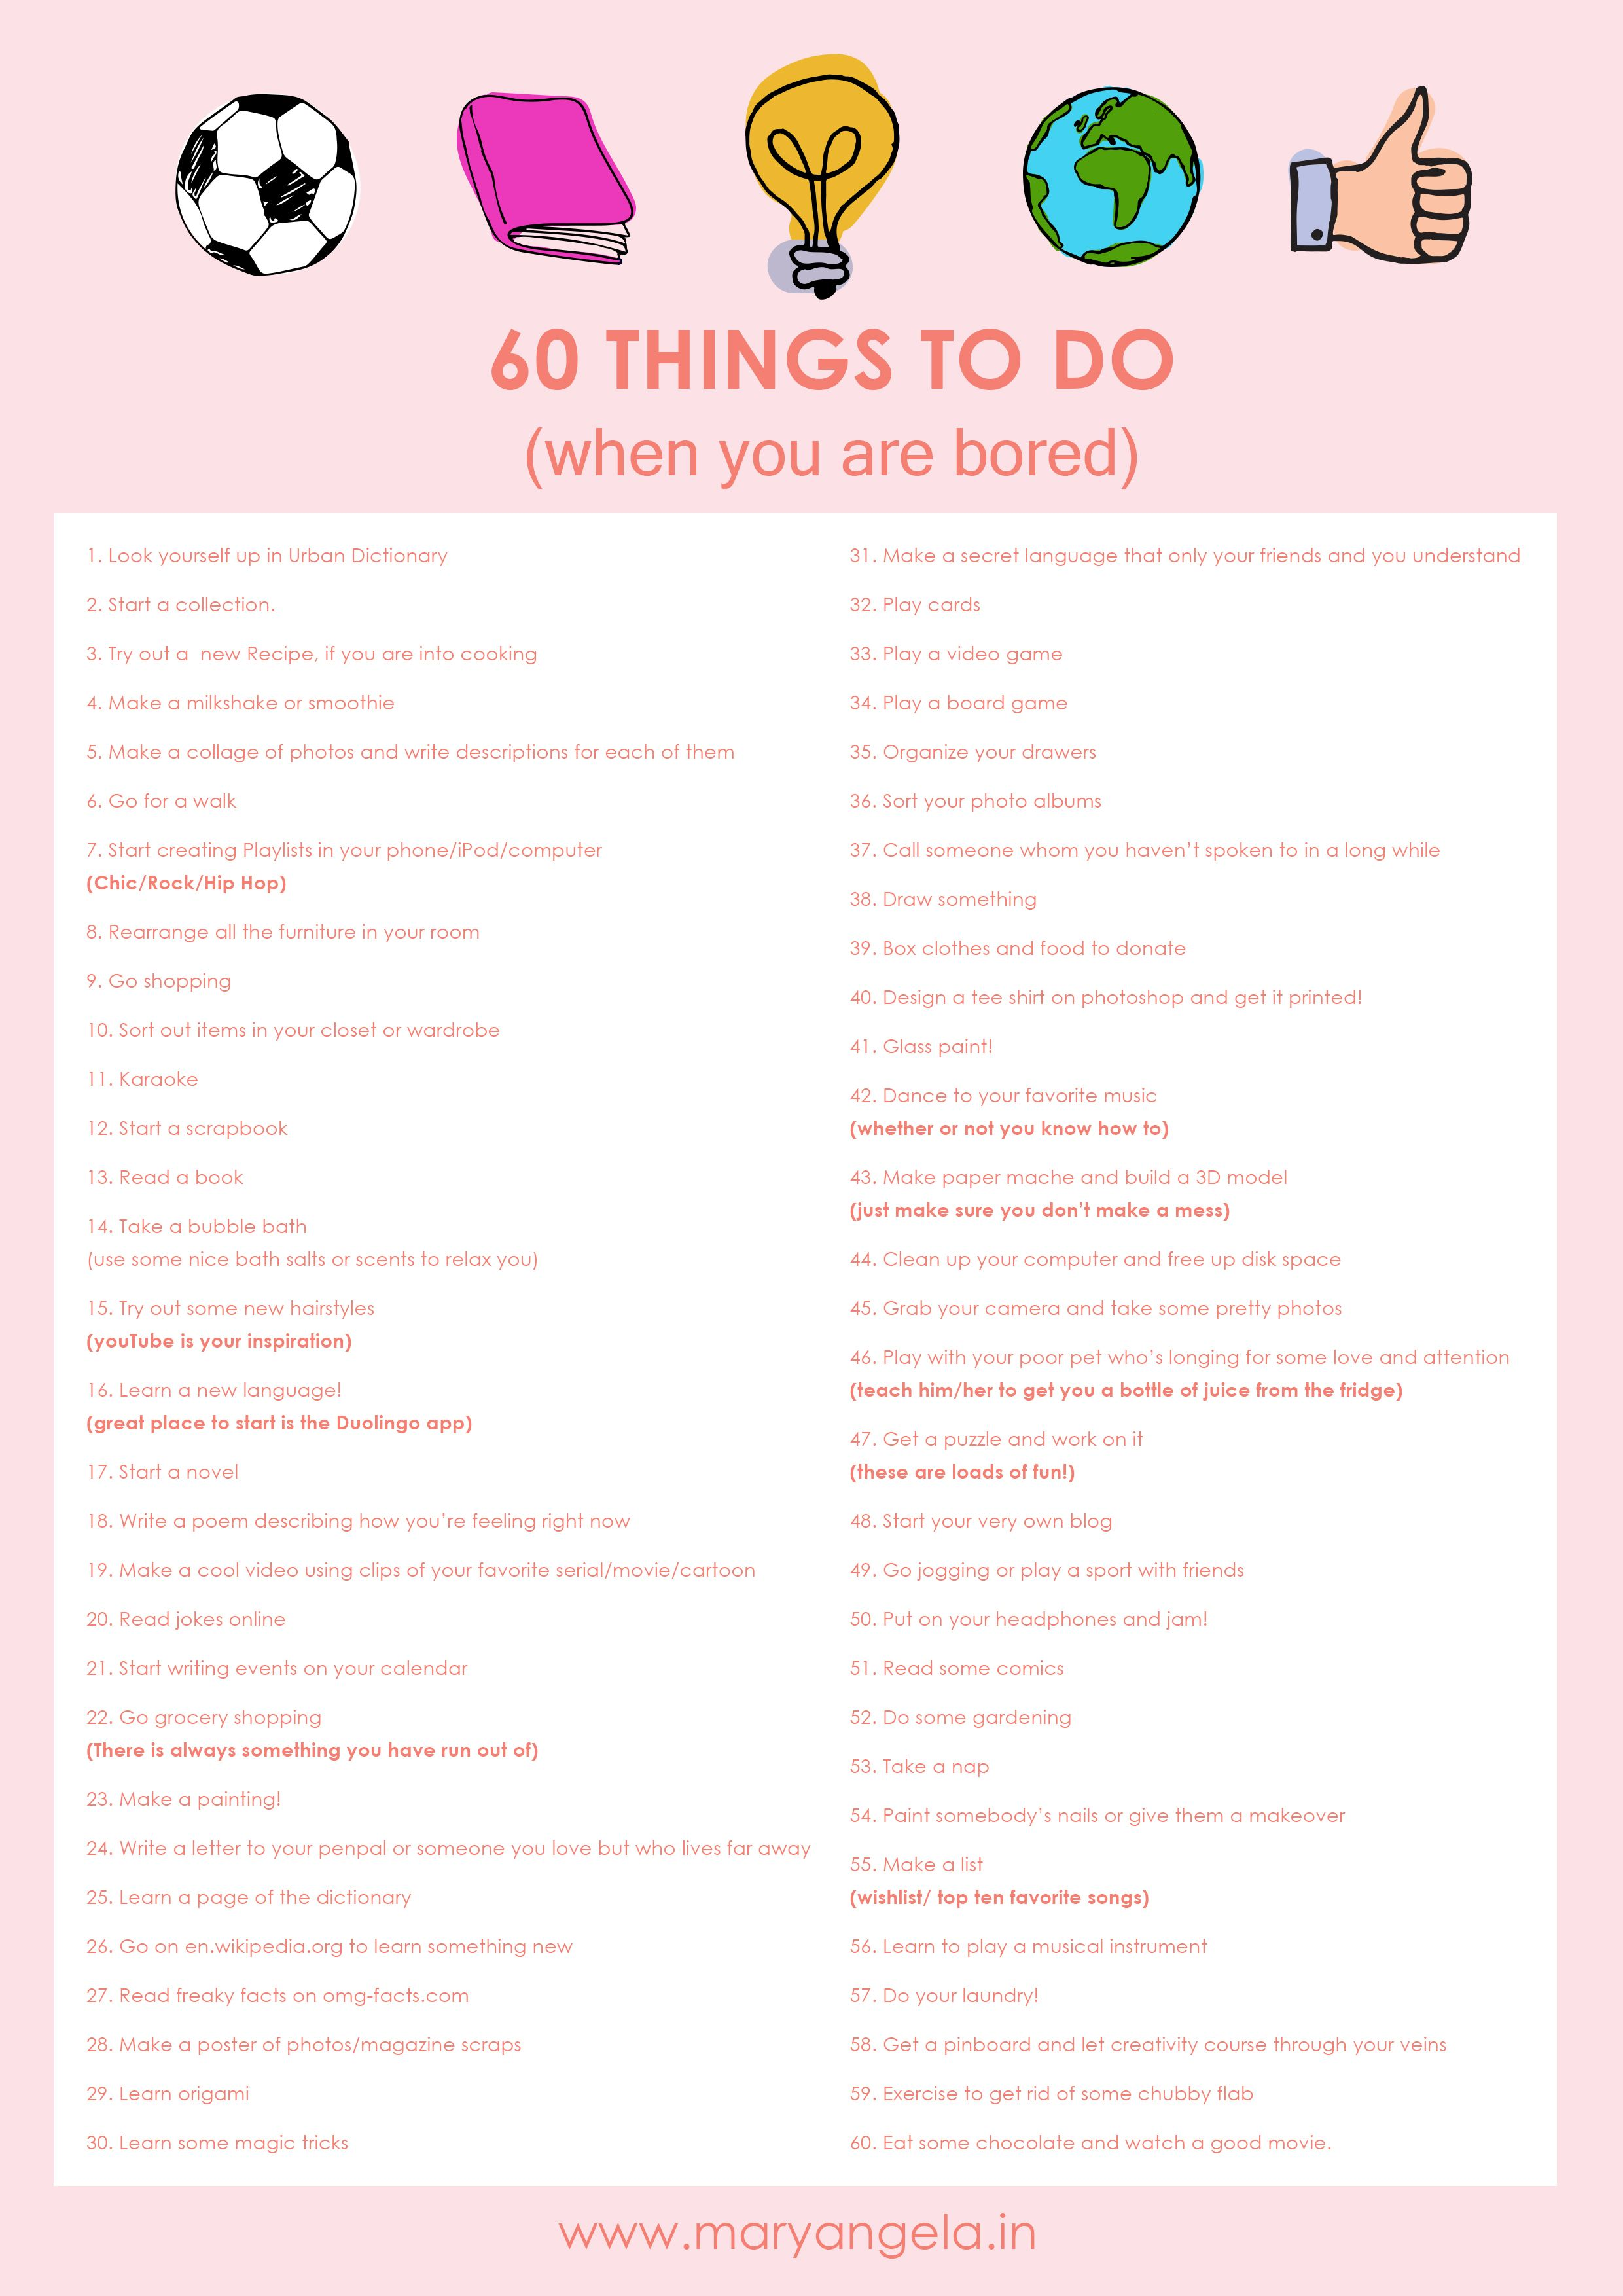 60 Things To Do When You Are Bored Free Download Life